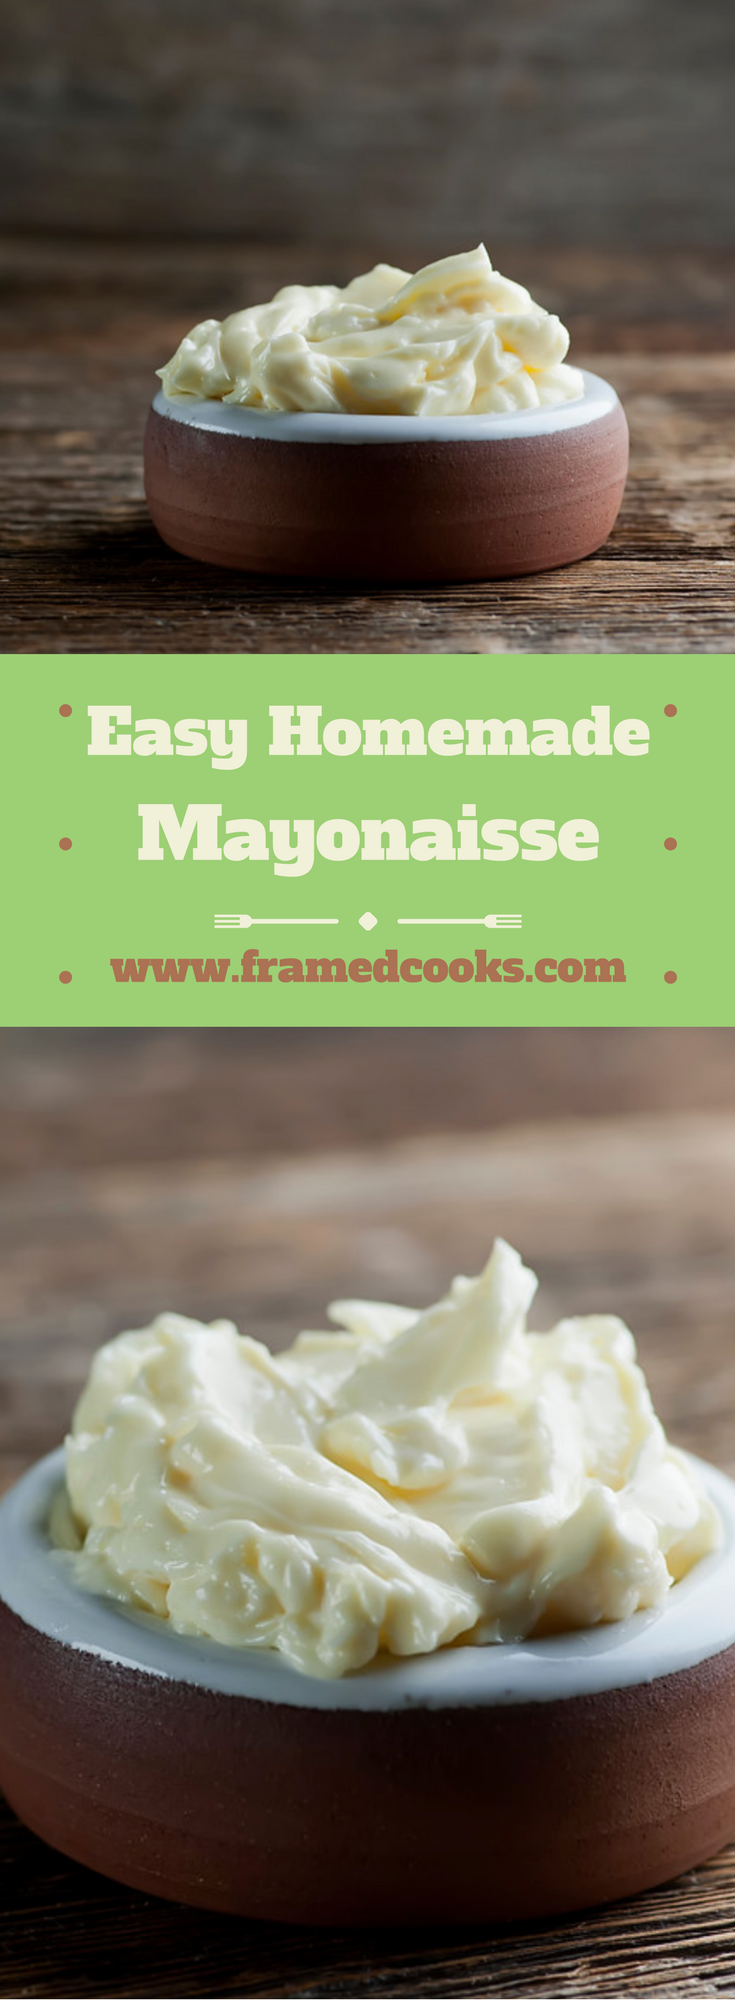 Want to know how to make homemade mayonnaise? Here's the easy recipe!